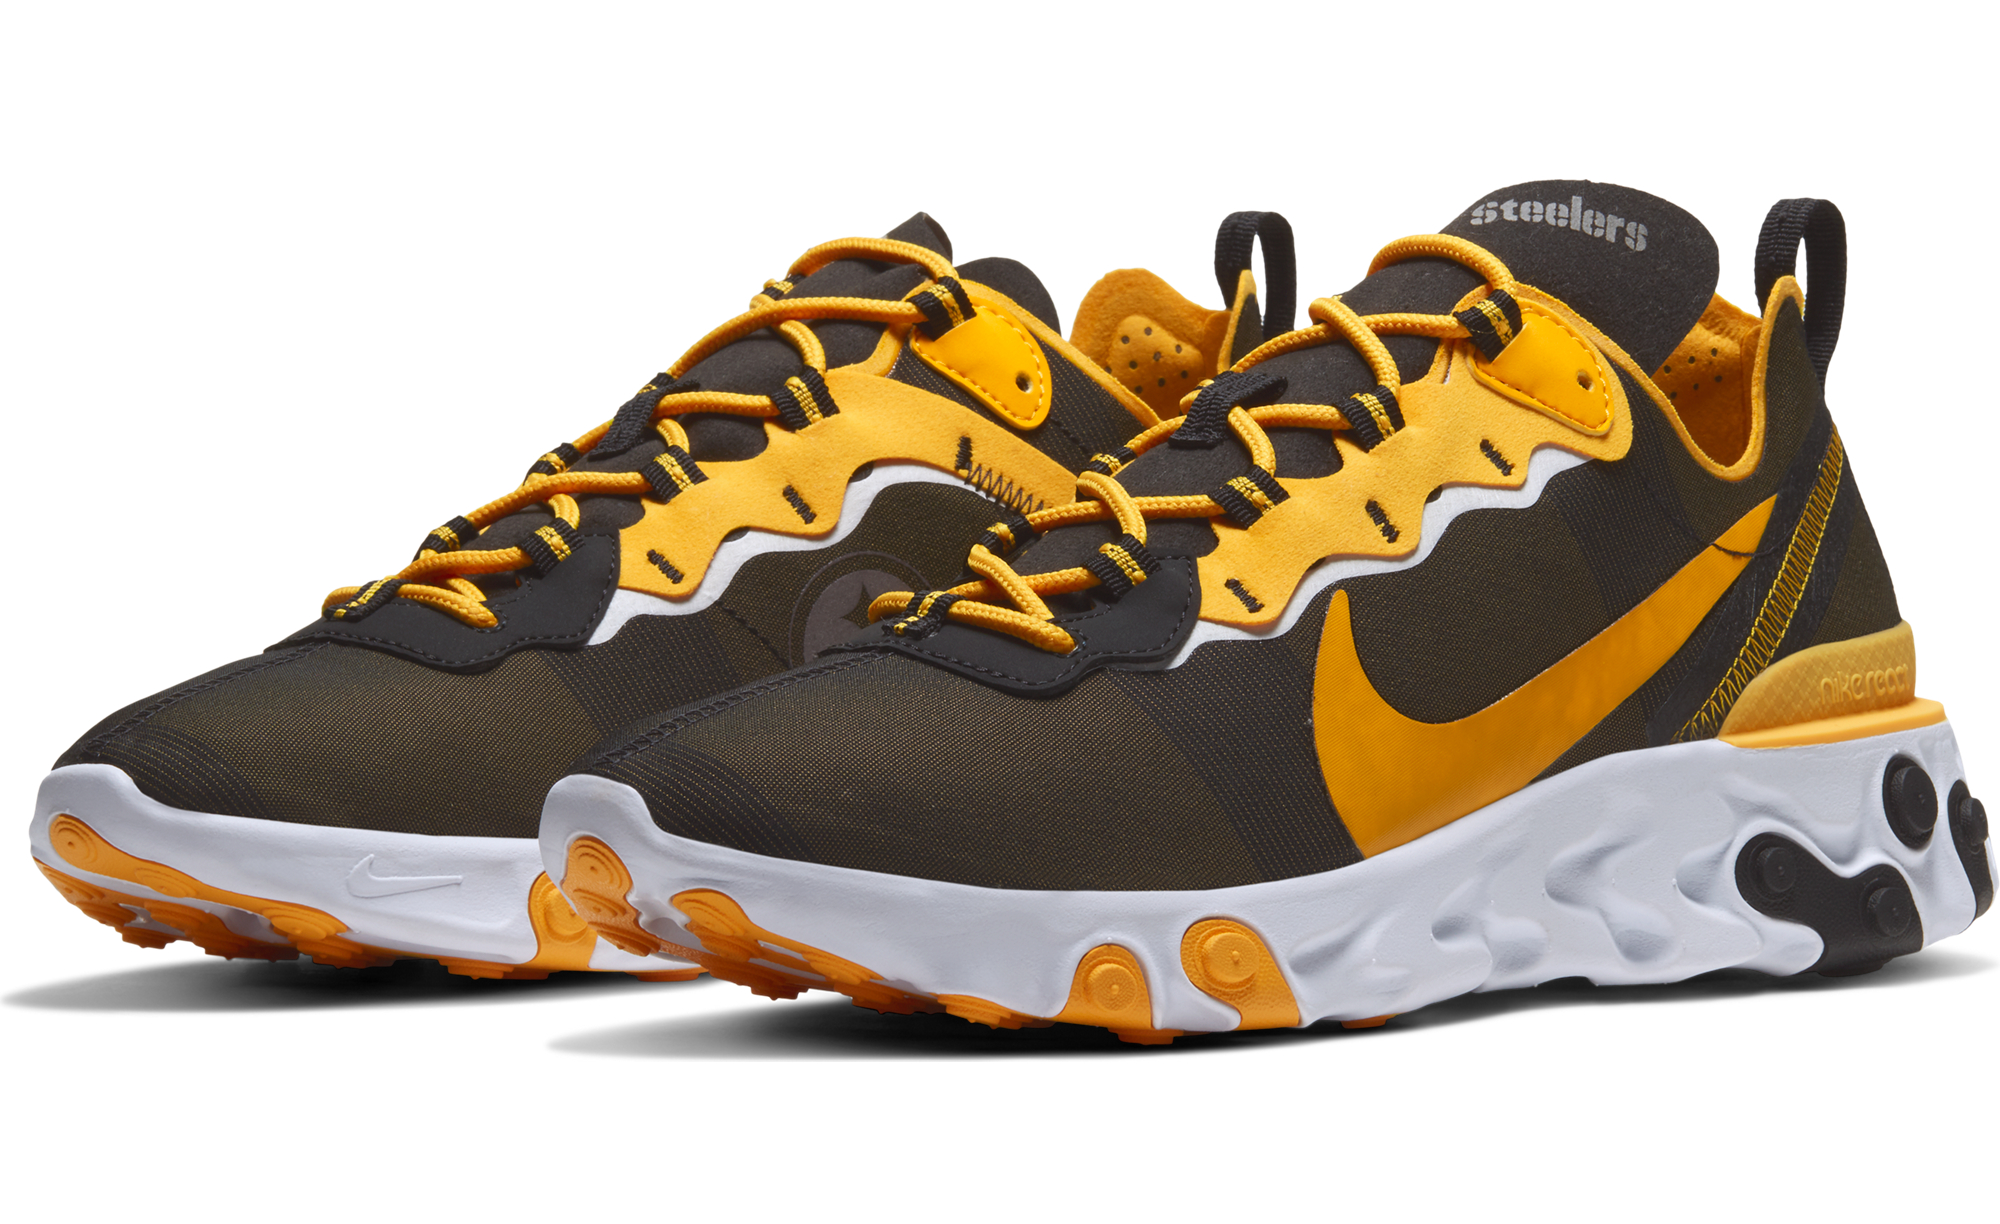 Would you pay $140 for these Steelers-themed limited edition Nike sneakers?